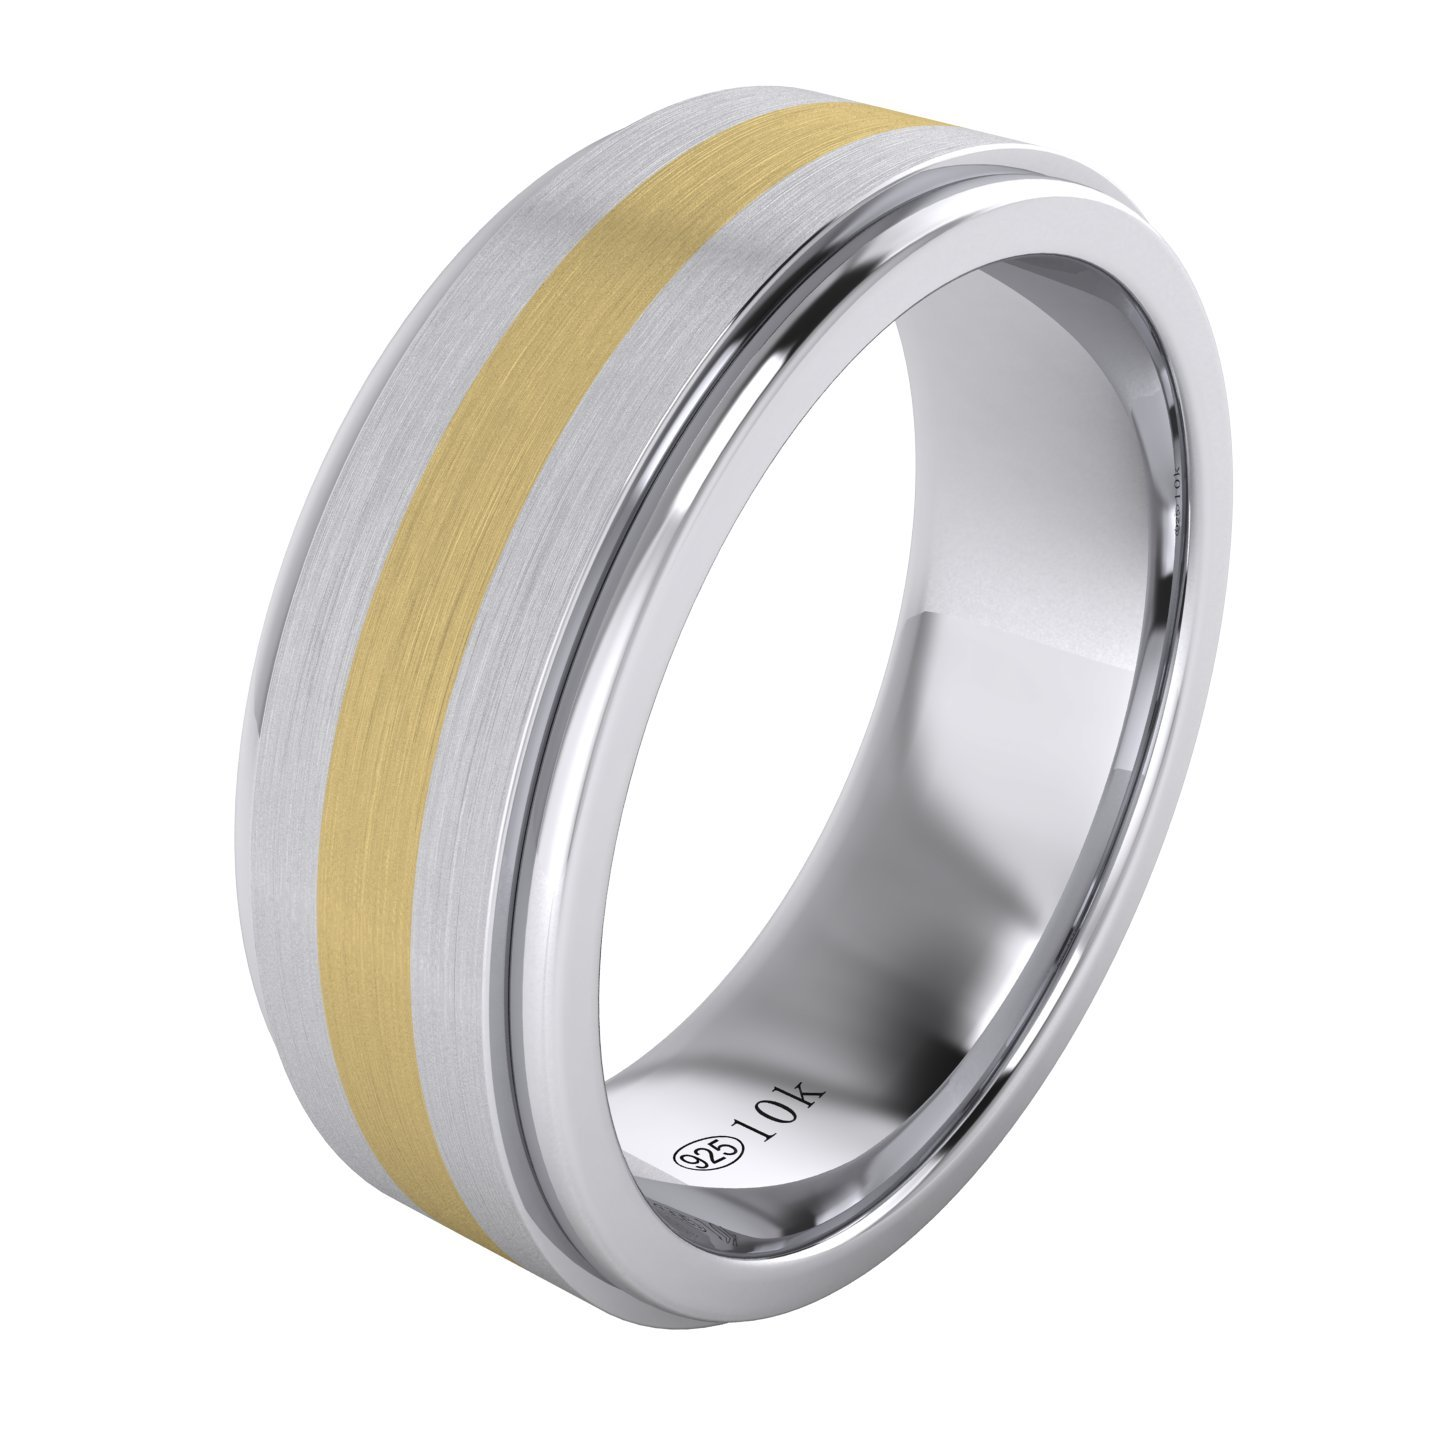 LANDA JEWEL Solid 10K Yellow Gold Inlaid Heavy 8mm Sterling Silver Mens Wedding Band Comfort Fit Two Tone (11)